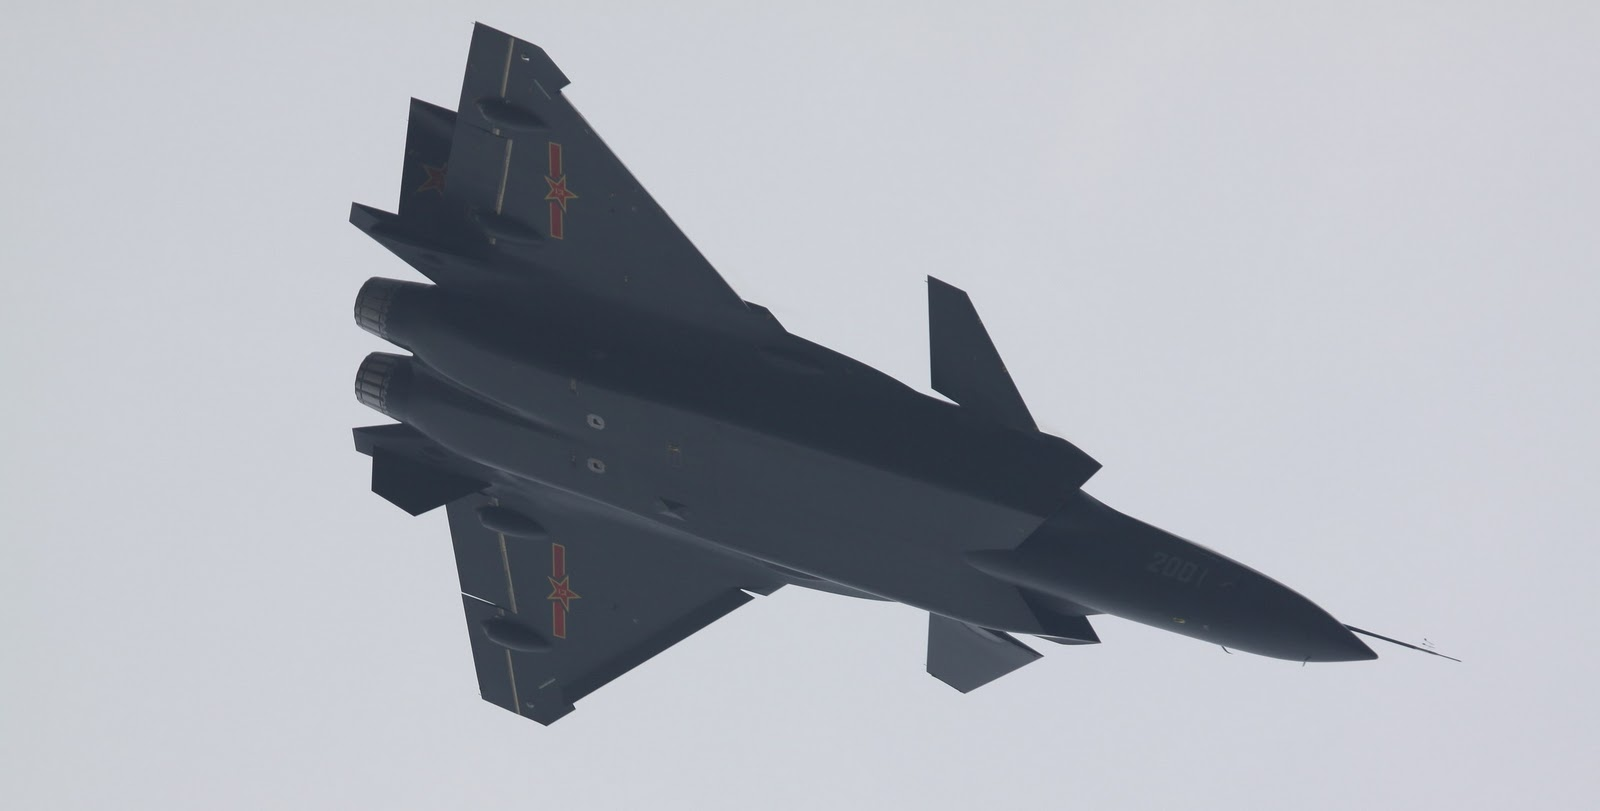 chine J-20+Mighty+Dragon++Chengdu+J-20+fifth+generation+stealth%252C+twin-engine+fighter+aircraft+prototype+People%2527s+Liberation+Army+Air+Force++OPERATIONAL+weapons+aam+bvr+missile+ls+pgm+gps+plaaf+%25283%2529